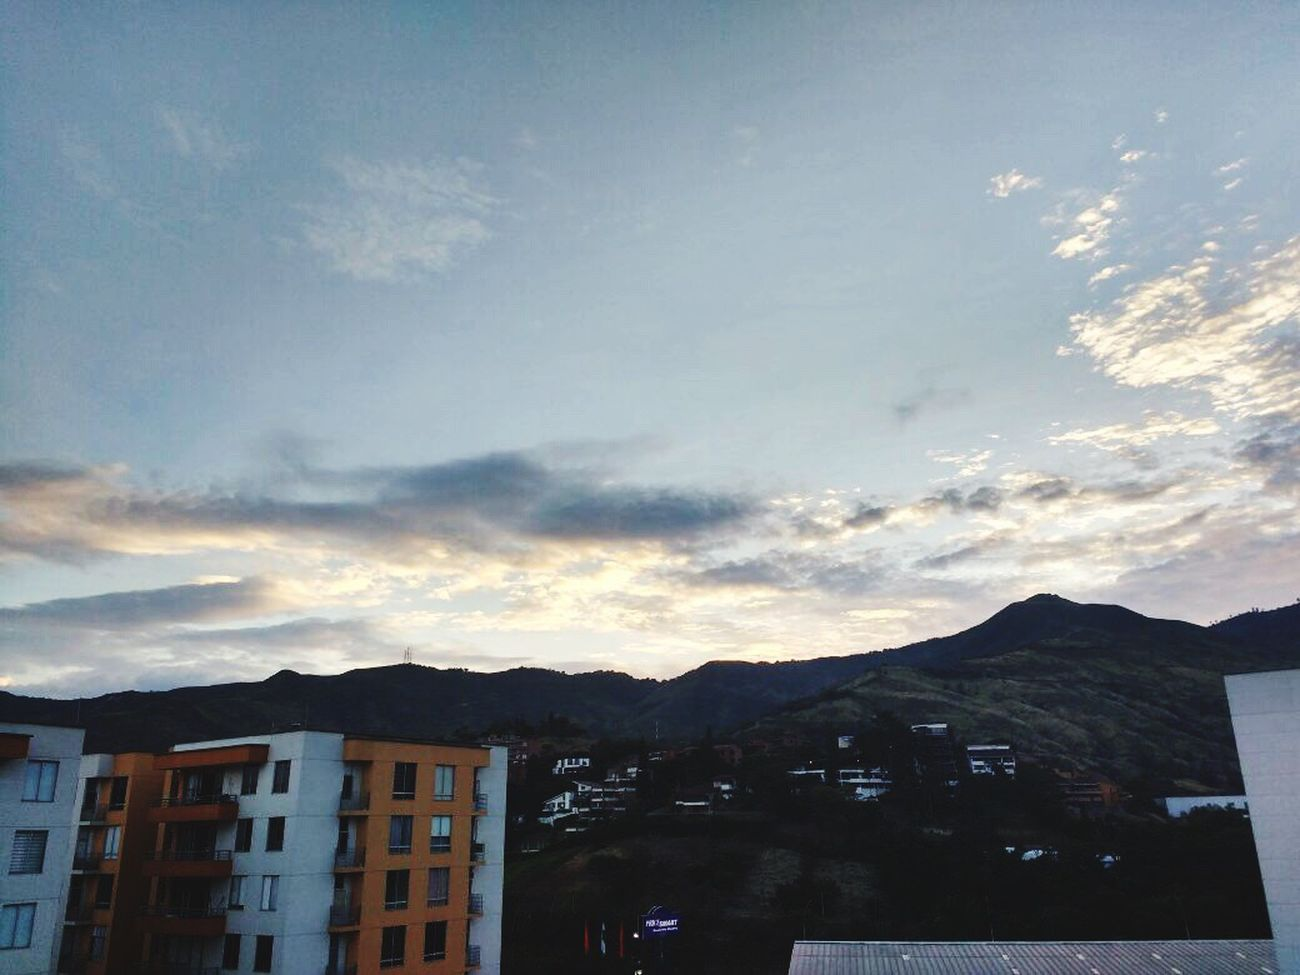 Picture credit: Santiago Guzman Rico Colombiansky CALI COLOMBIA Dawn Of A New Day PhonePhotography Relaxing View Colombia ♥